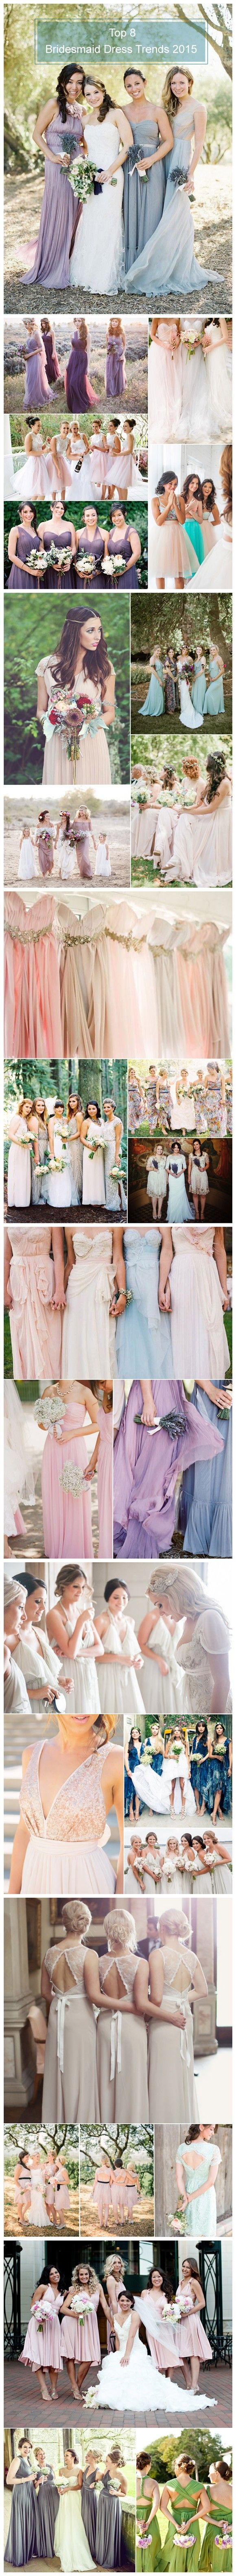 best dreaming images on pinterest wedding ideas floral